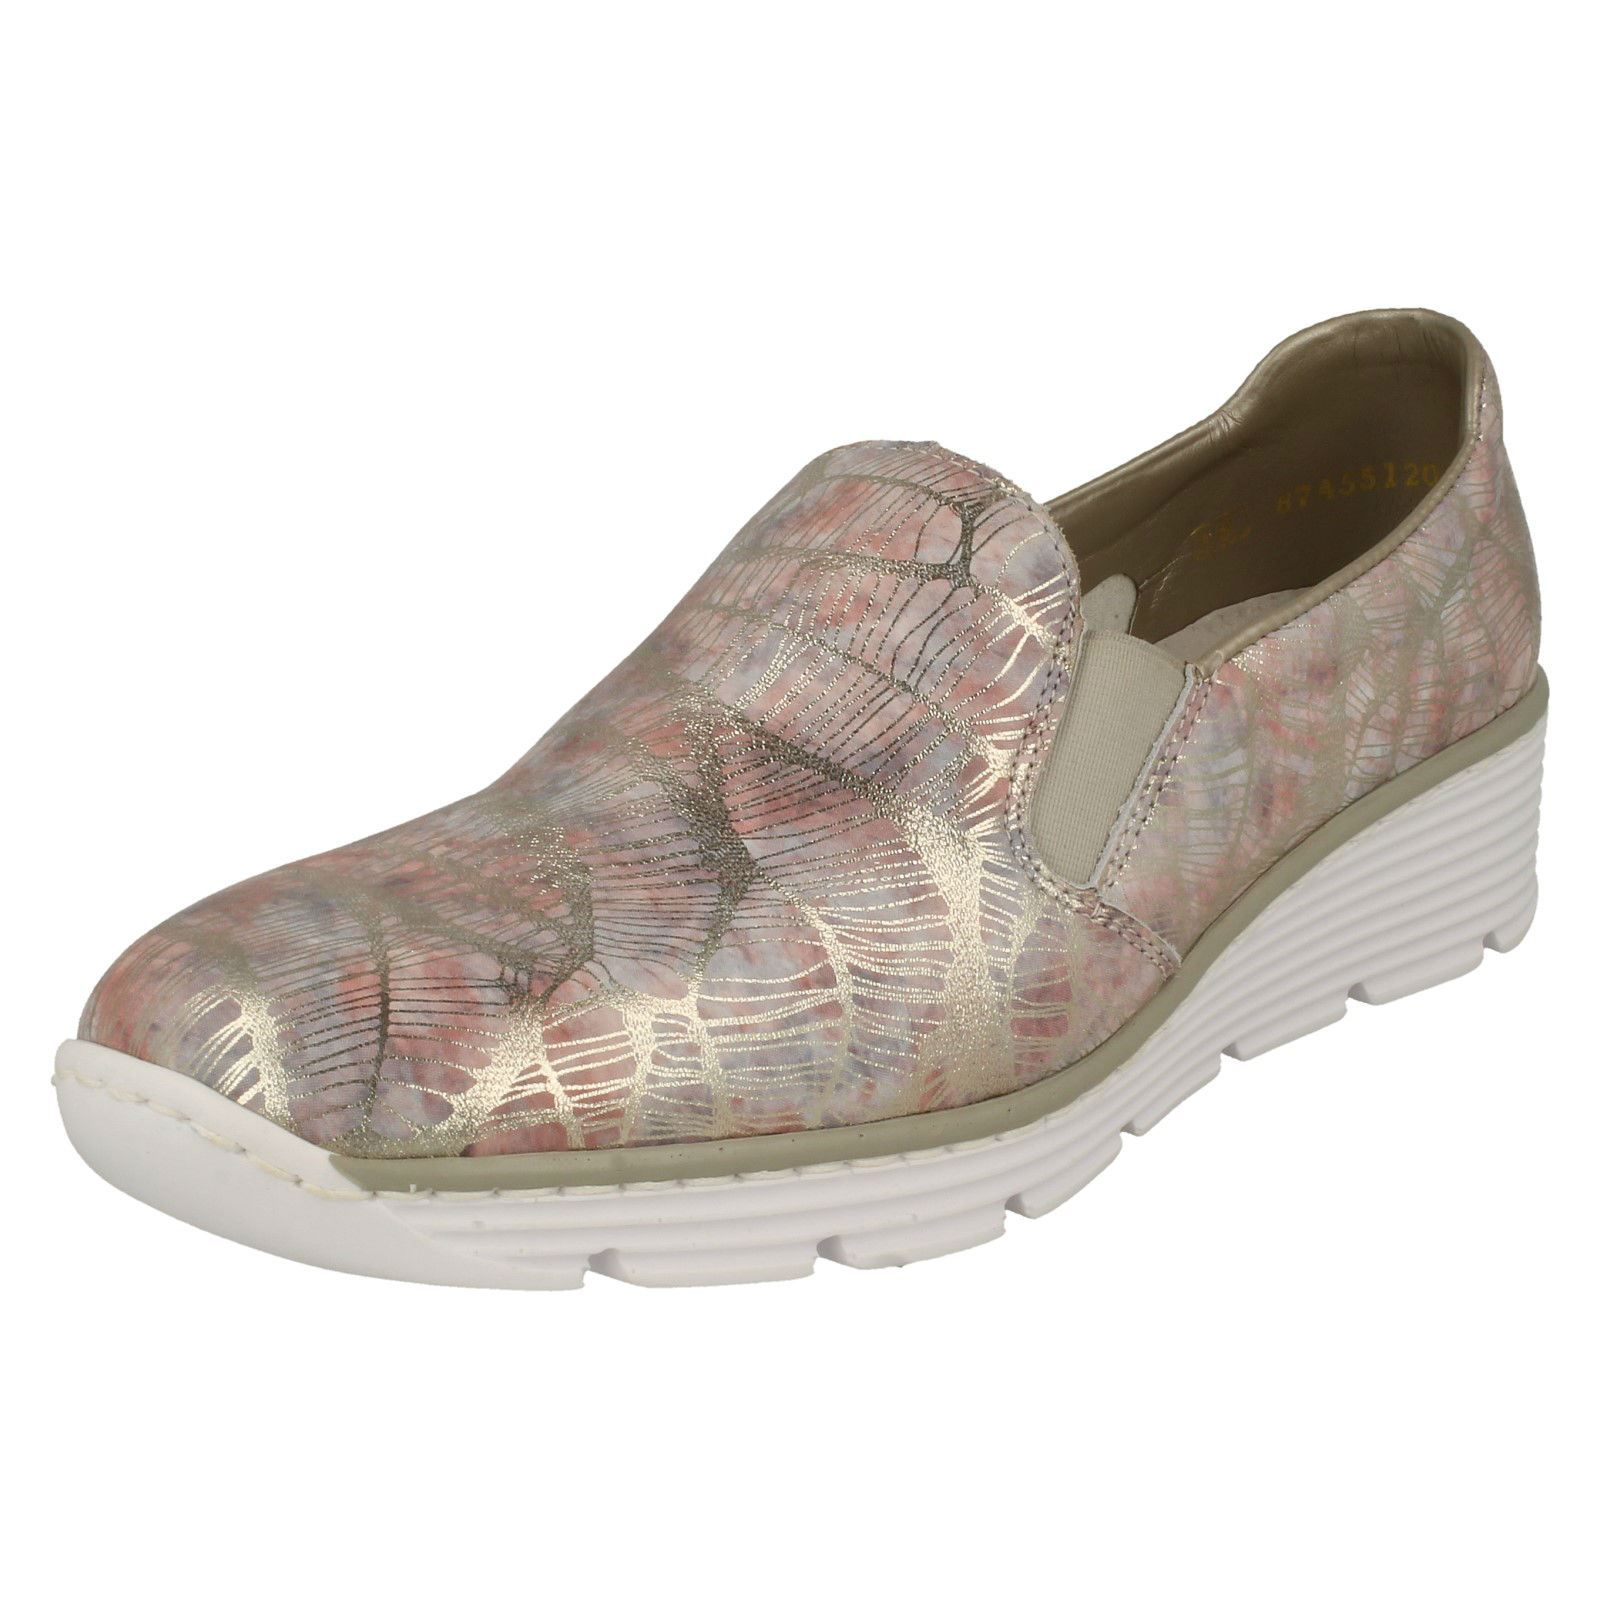 Womens On Rieker Casual Flat Slip On Womens Shoes '58766' f54ab8